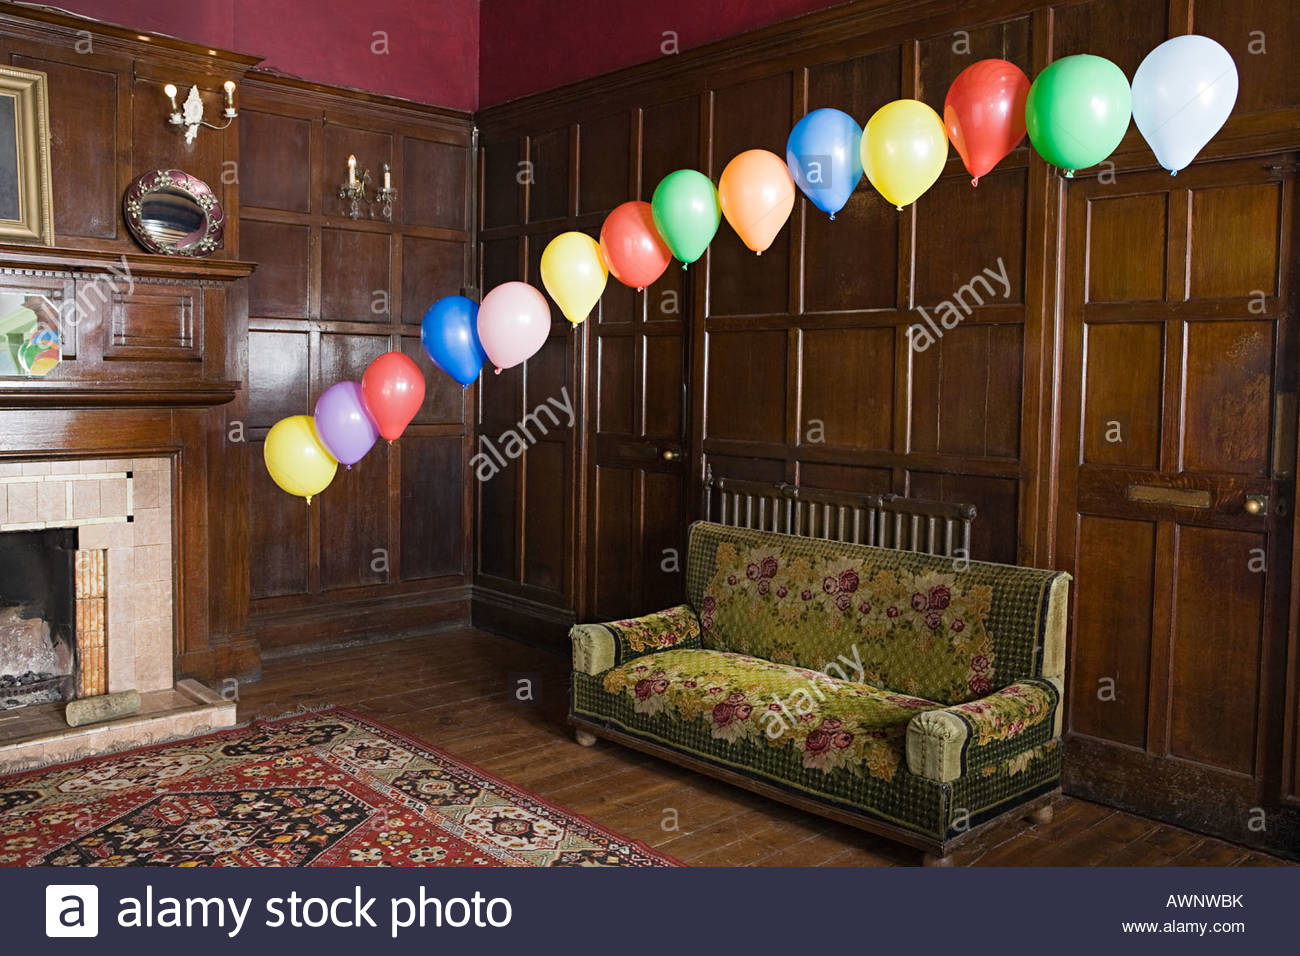 Balloons floating in a lounge - Stock Image